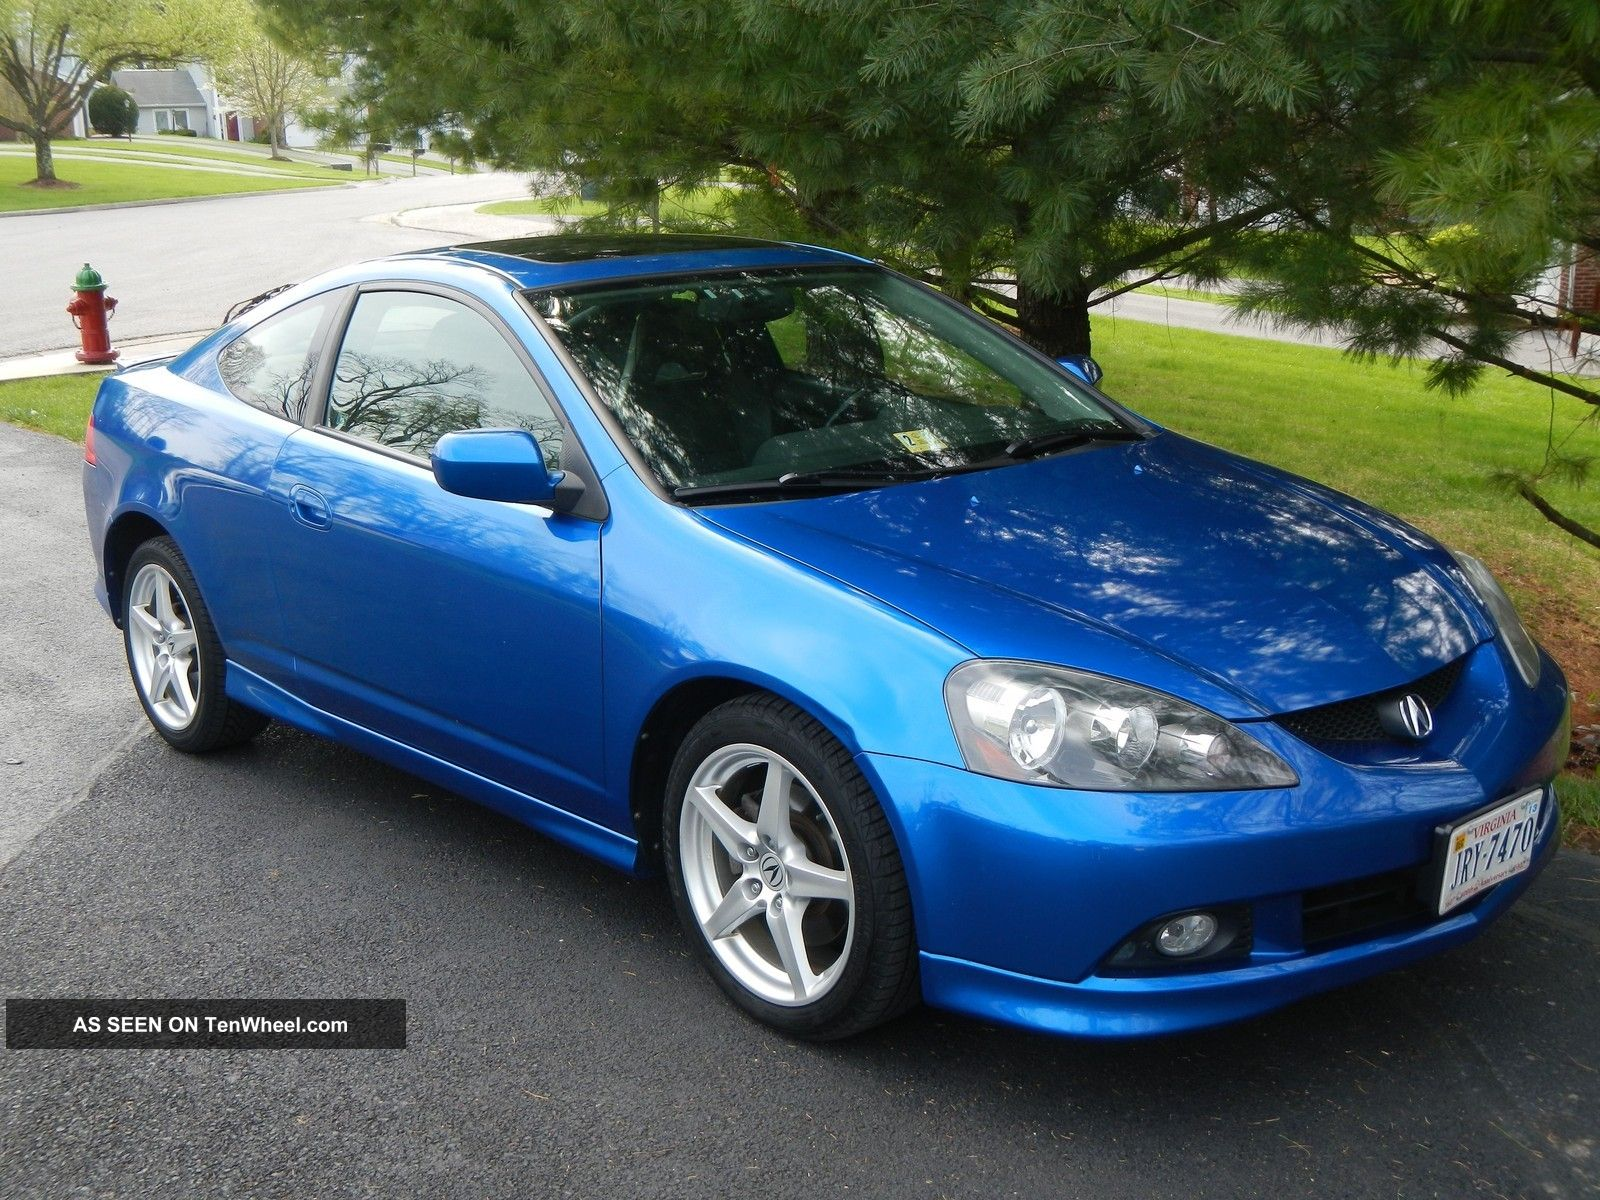 2005 Acura RSX Type-S photo - 9